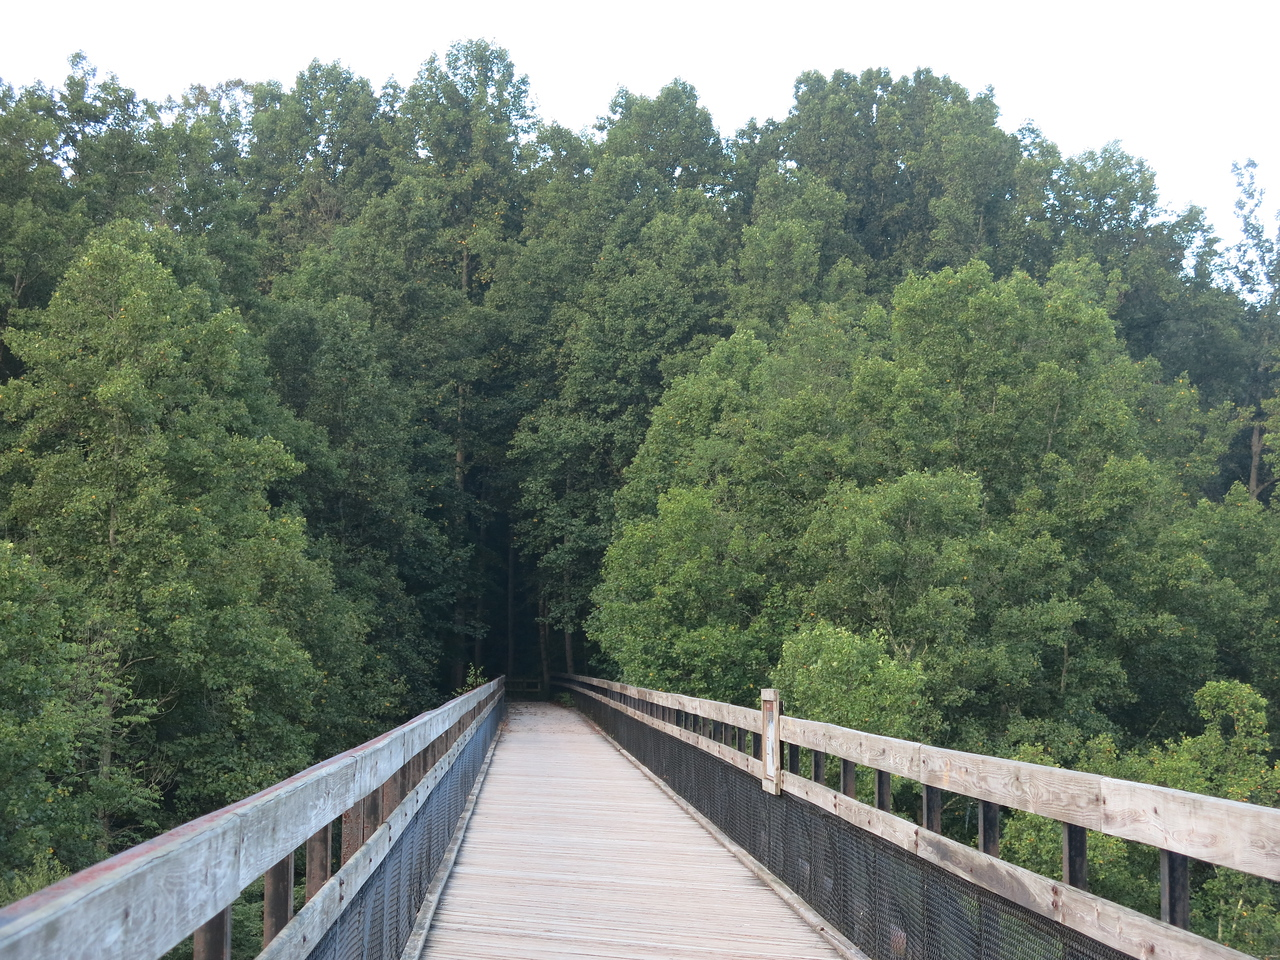 GAP trail heading south into the Ferncliff Peninsula from High Bridge